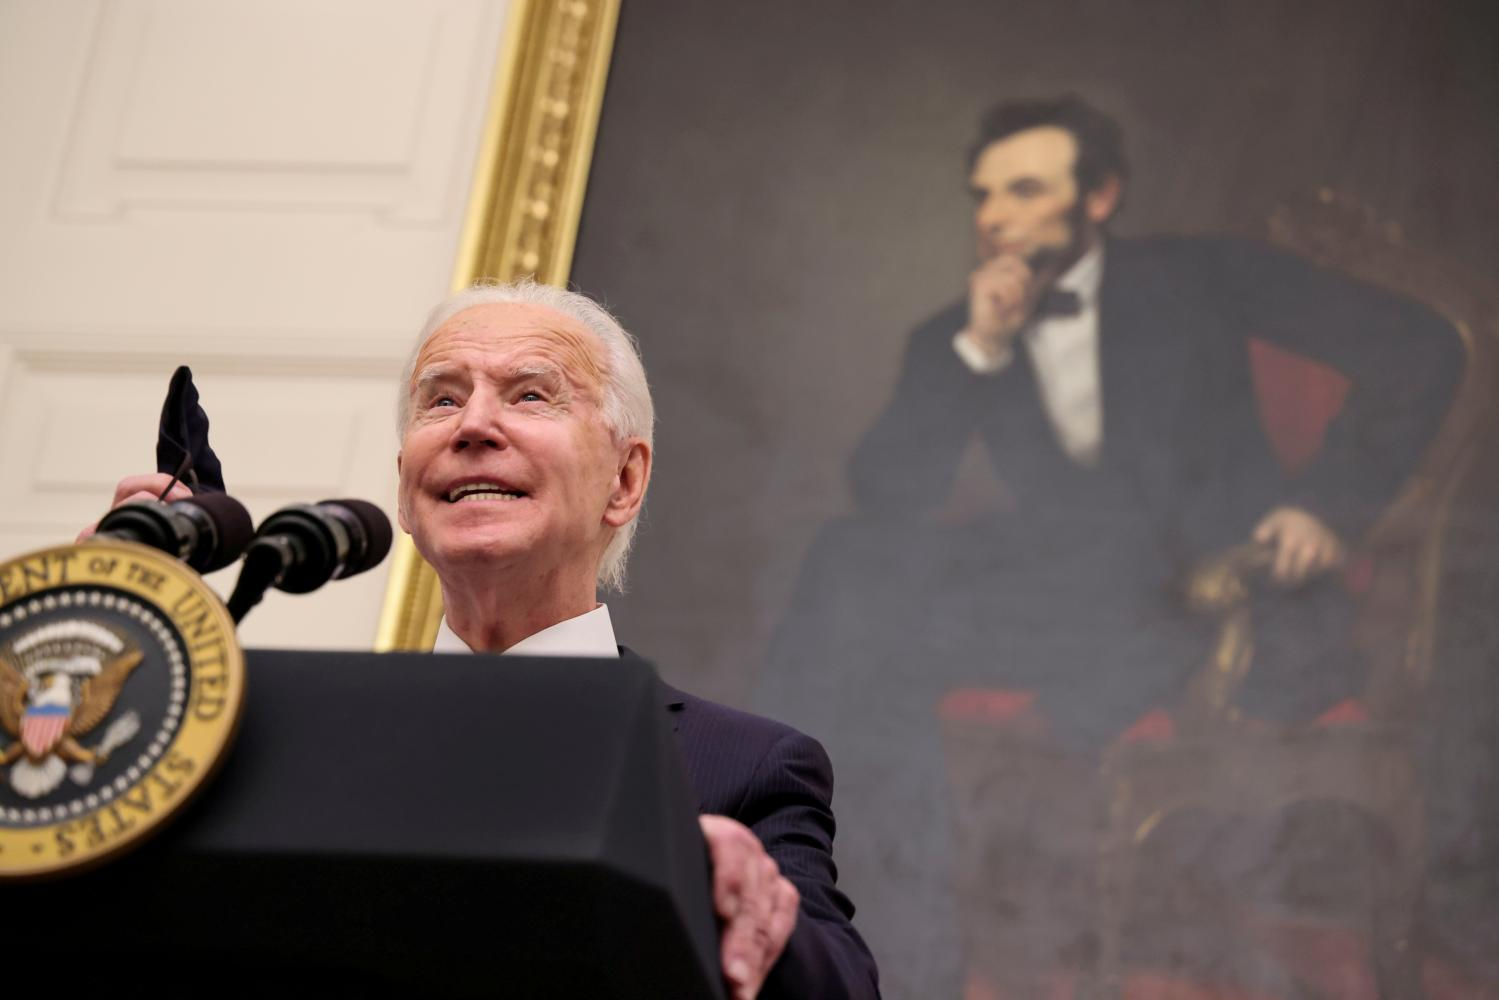 President Biden's daunting foreign policy challenges